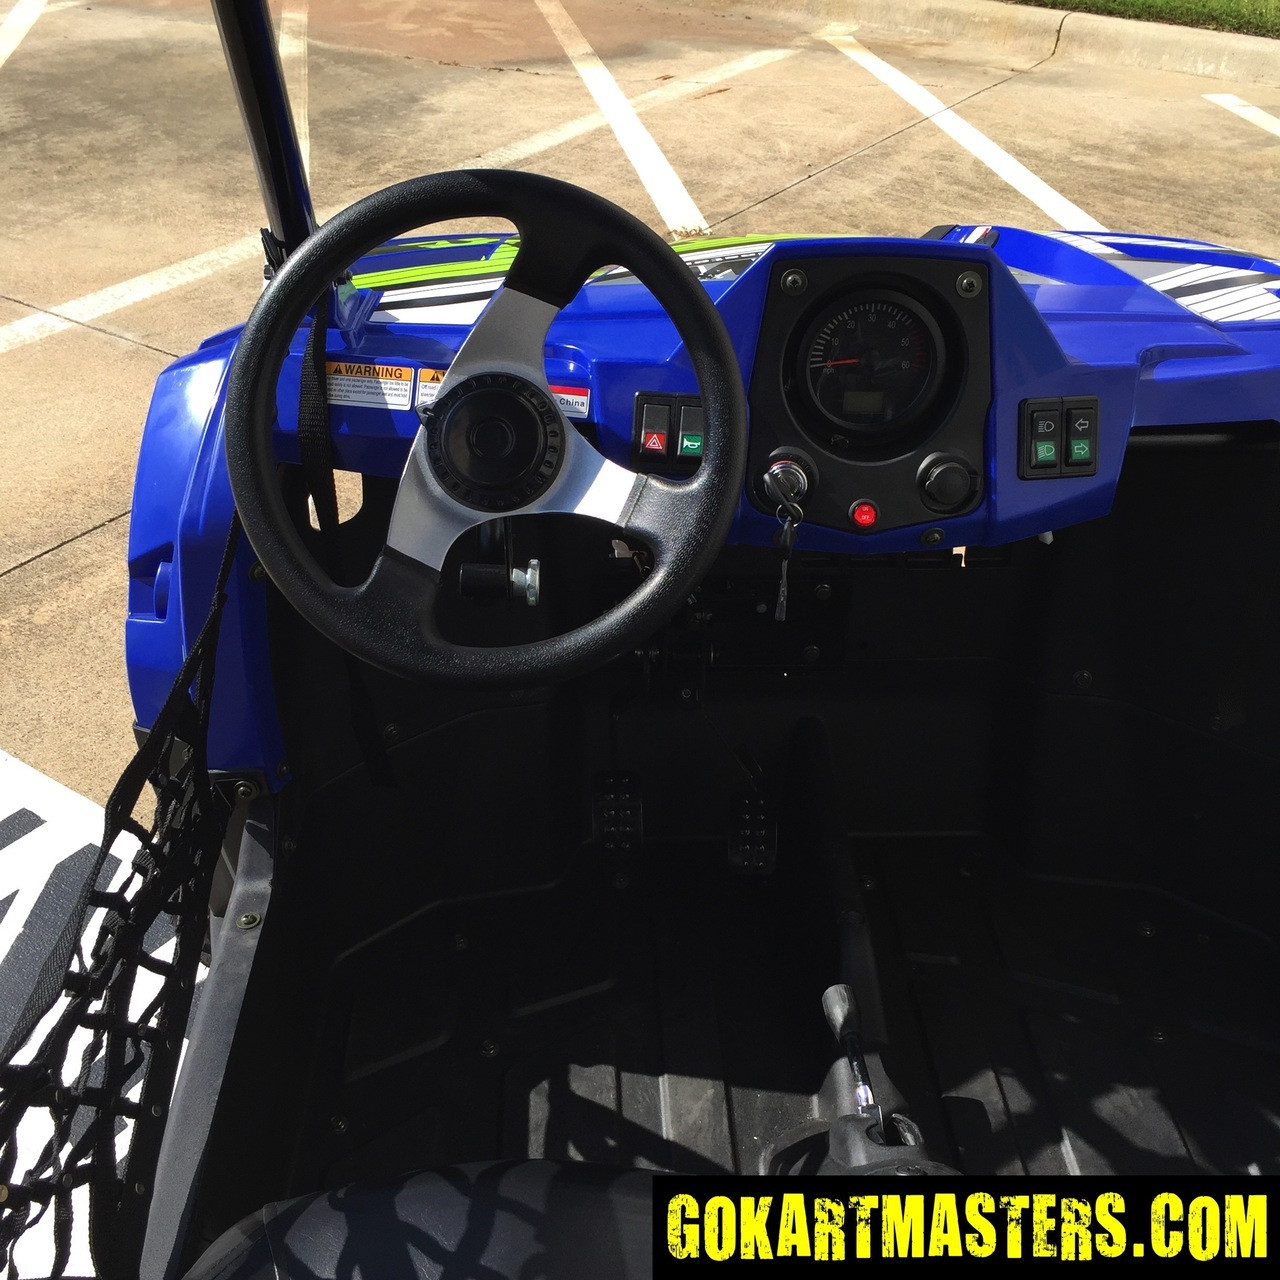 TrailMaster Challenger 300S UTV - View From Driver's Seat